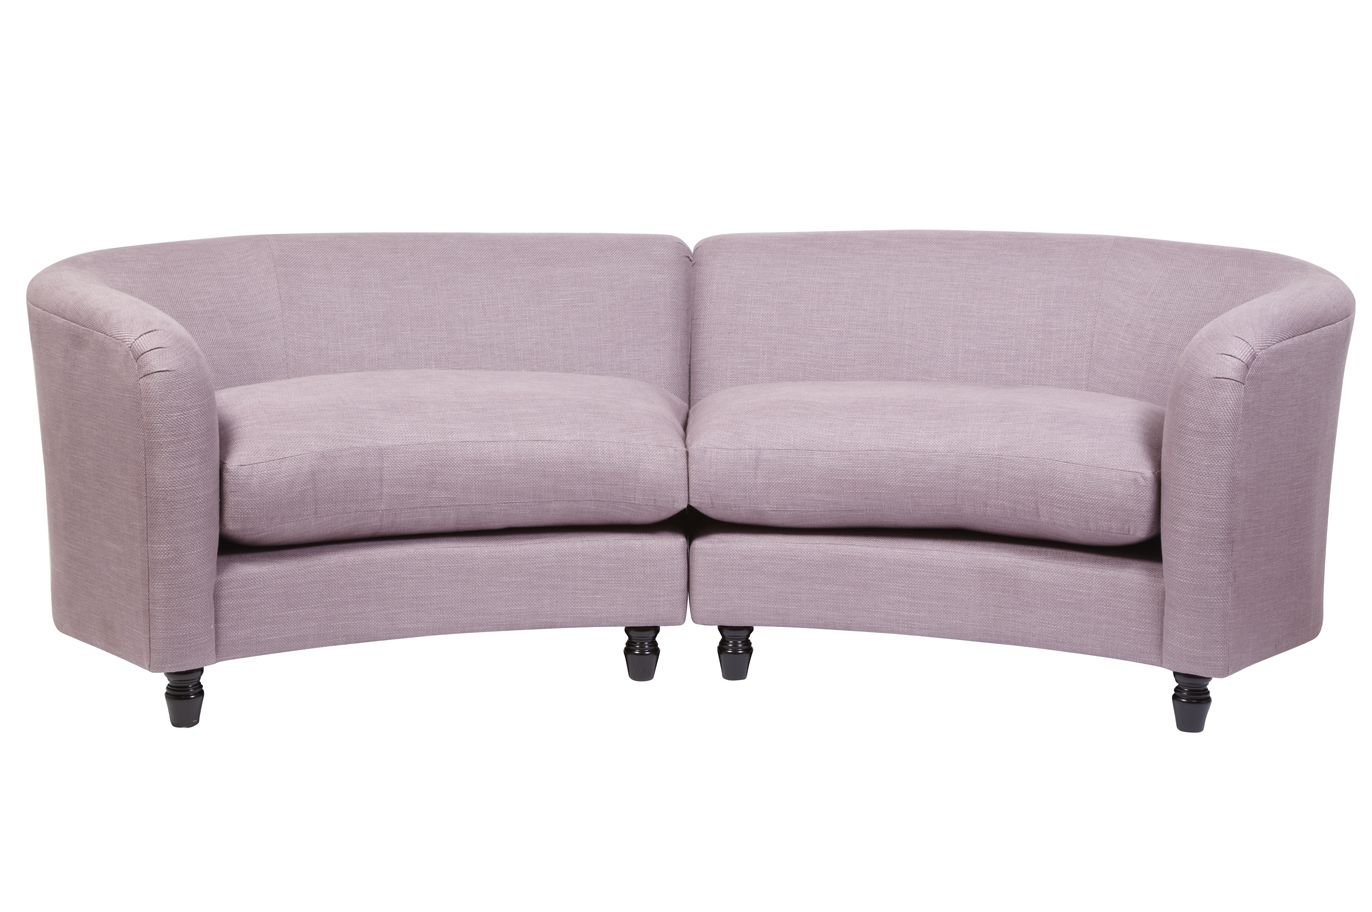 Large round curved sofa sectional astoria upholstered for Small sectional sofa ashley furniture